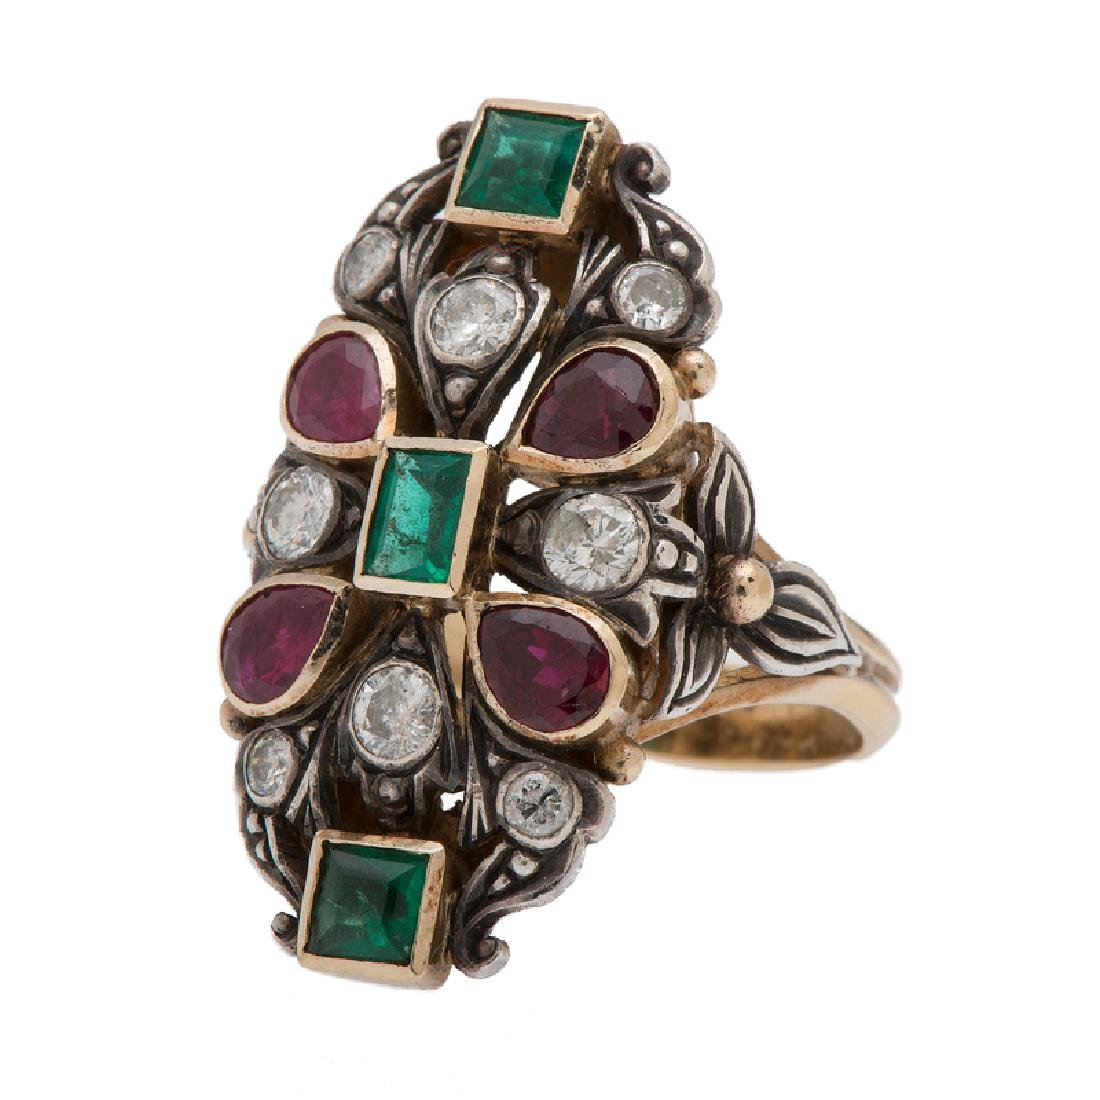 Diamond, Ruby, and Emerald Ring in 18 Karat Gold and